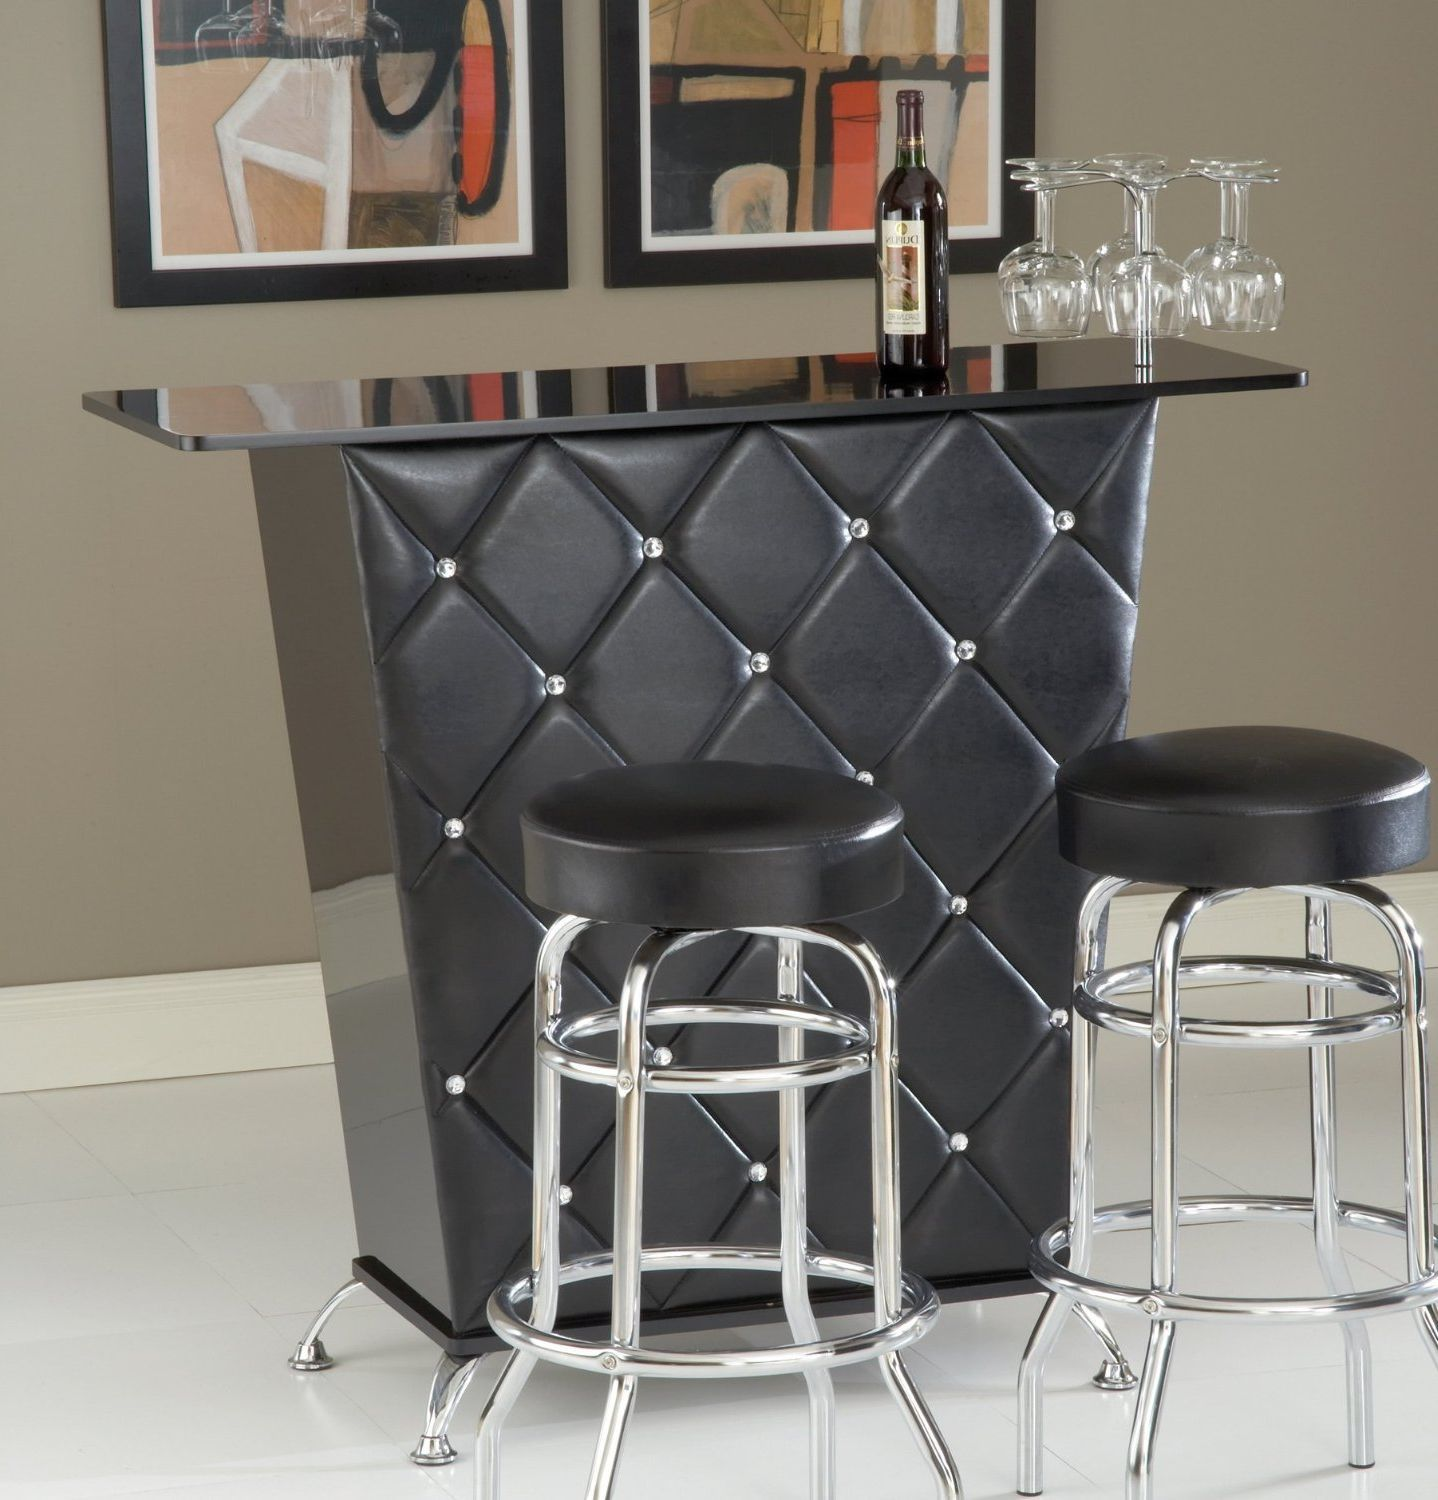 Portable Mini Bar Furniture Design Ideas Home Bar Chairs Stainless ...